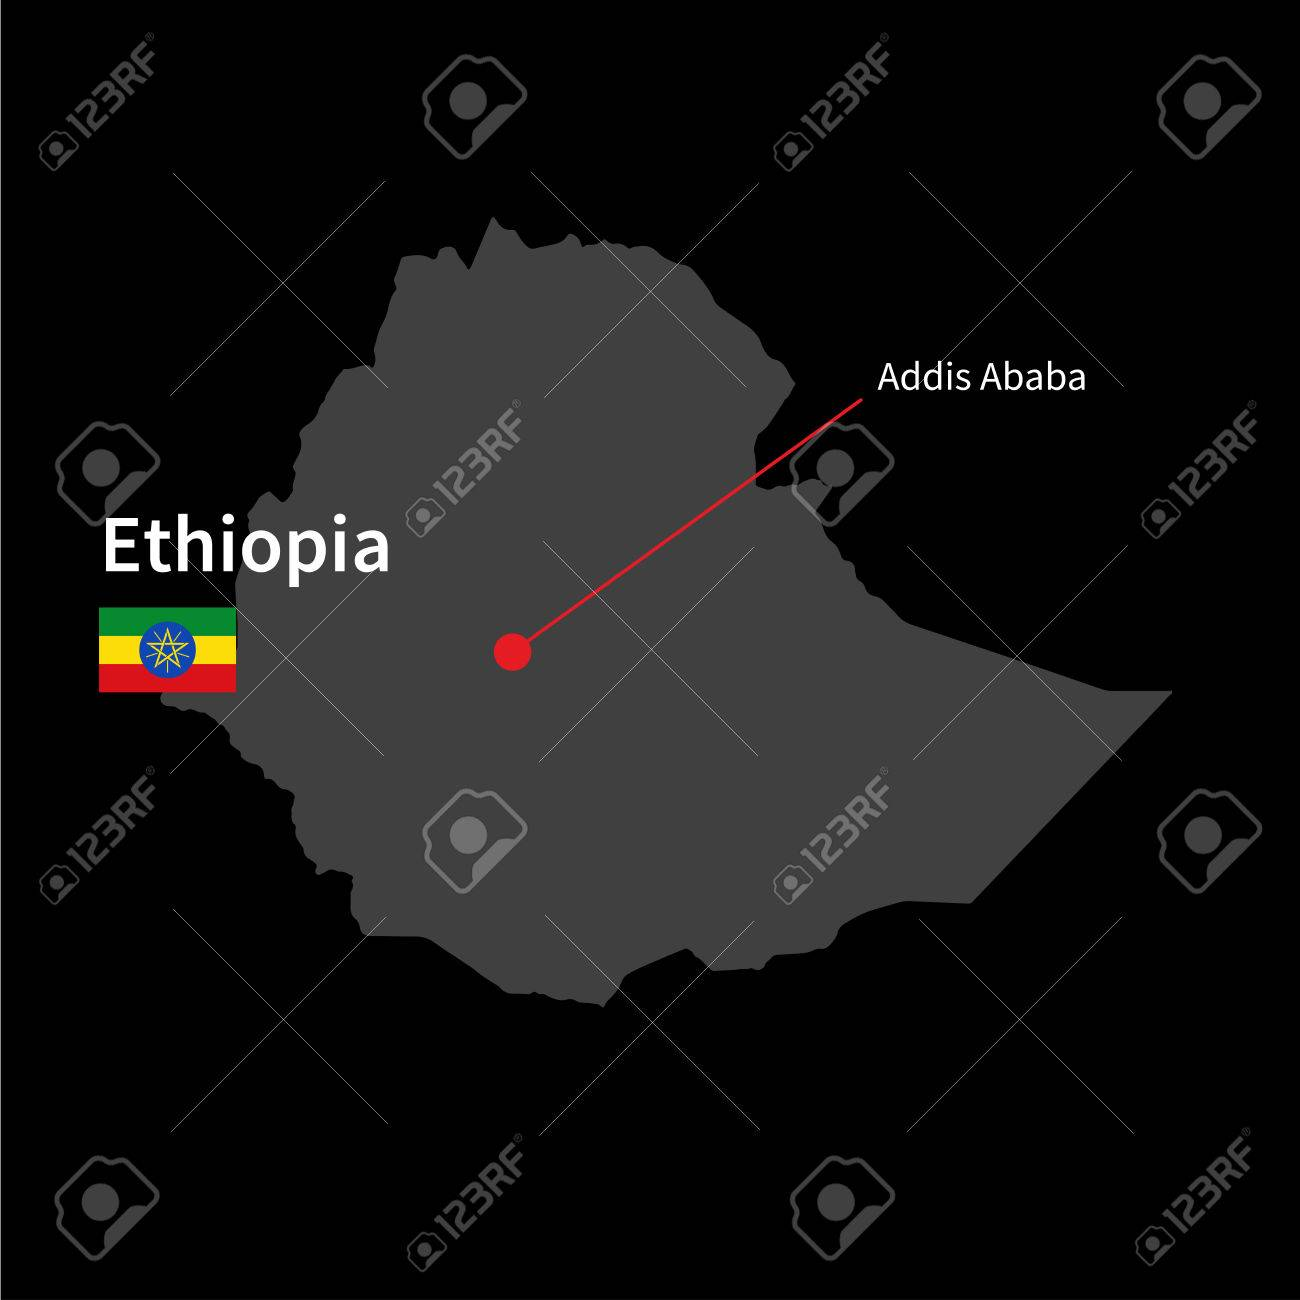 Detailed Map Of Ethiopia And Capital City Addis Ababa With Flag ...